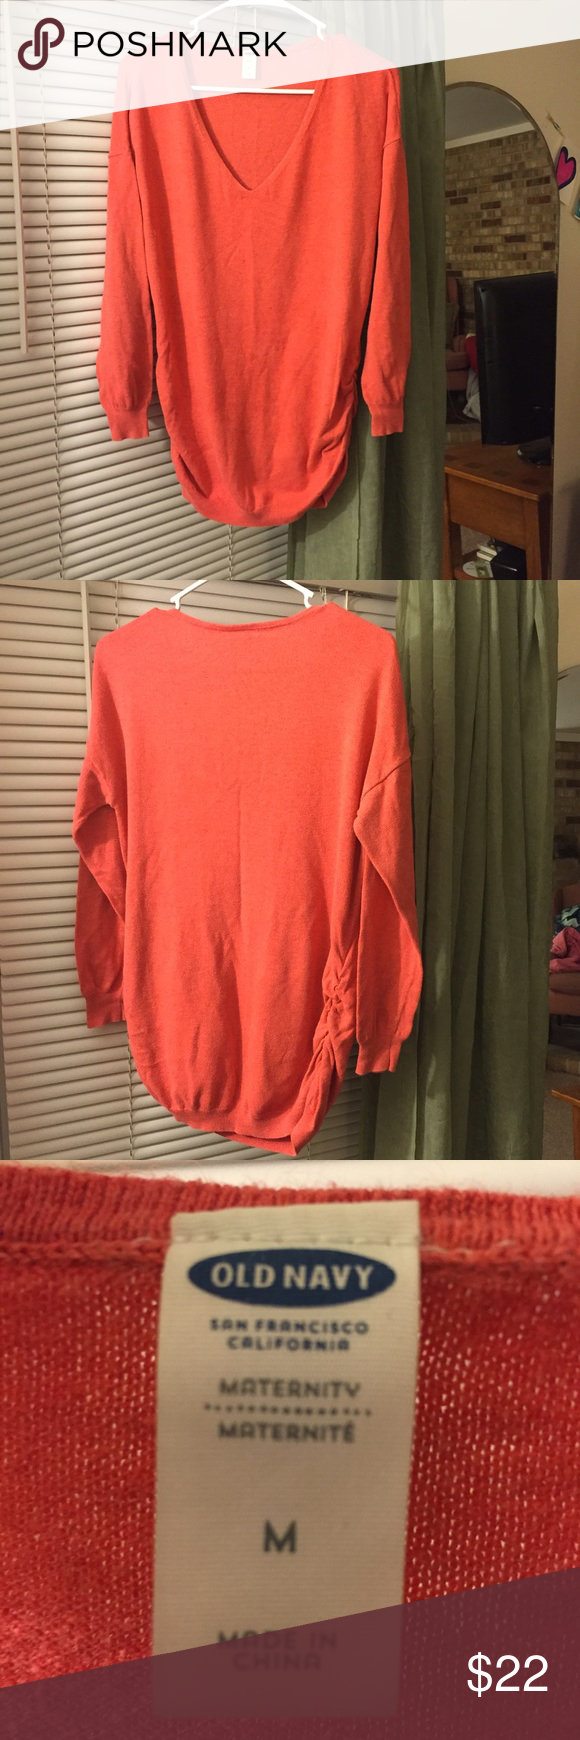 Old navy orange sweater. This super cute sweater is perfectly ...